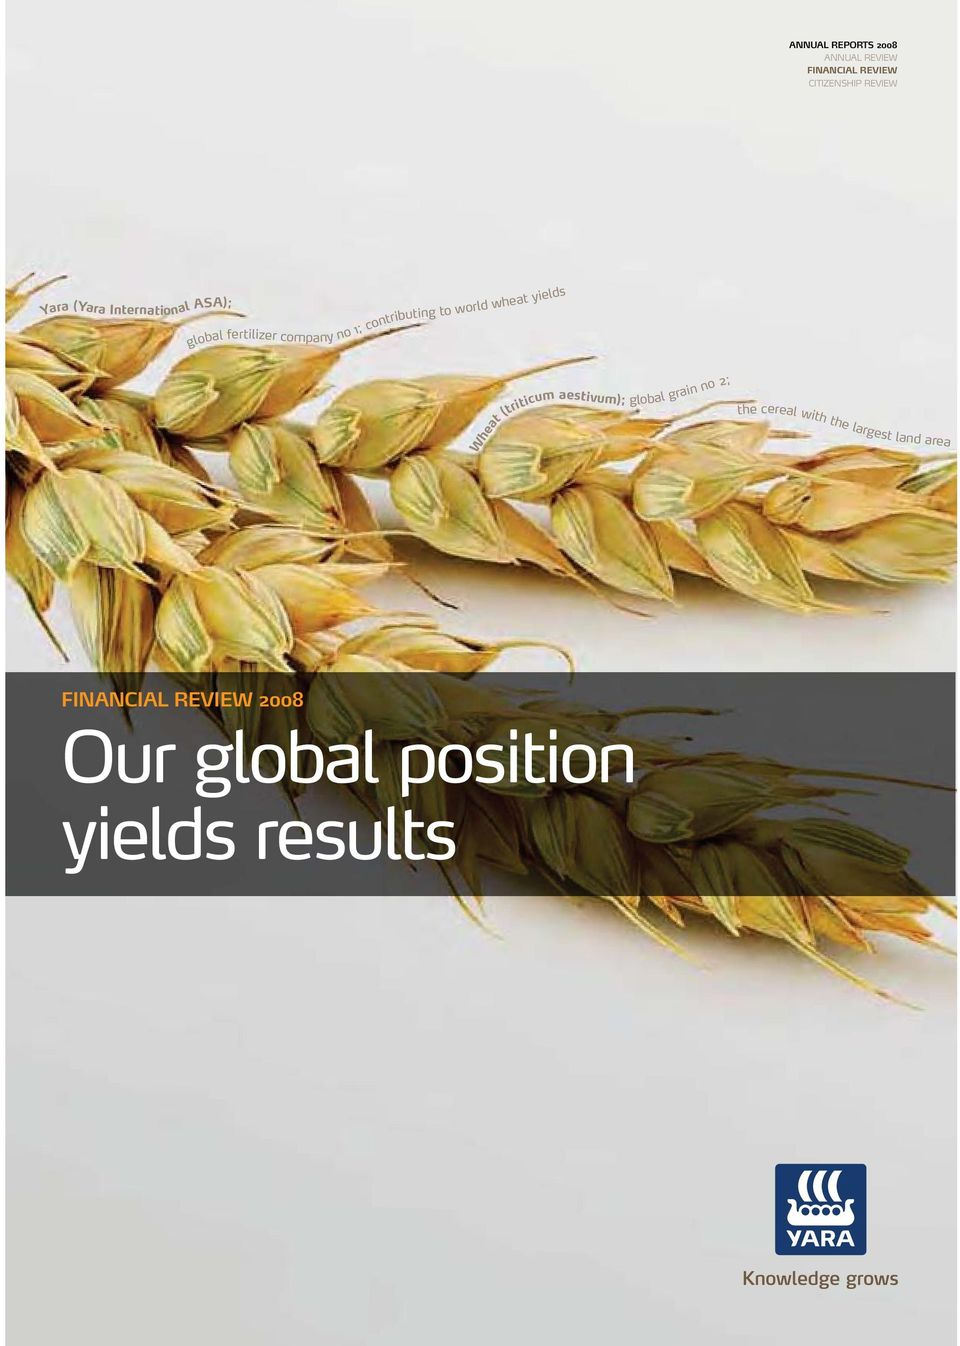 world wheat yields Wheat (triticum aestivum); global grain no 2; the cereal